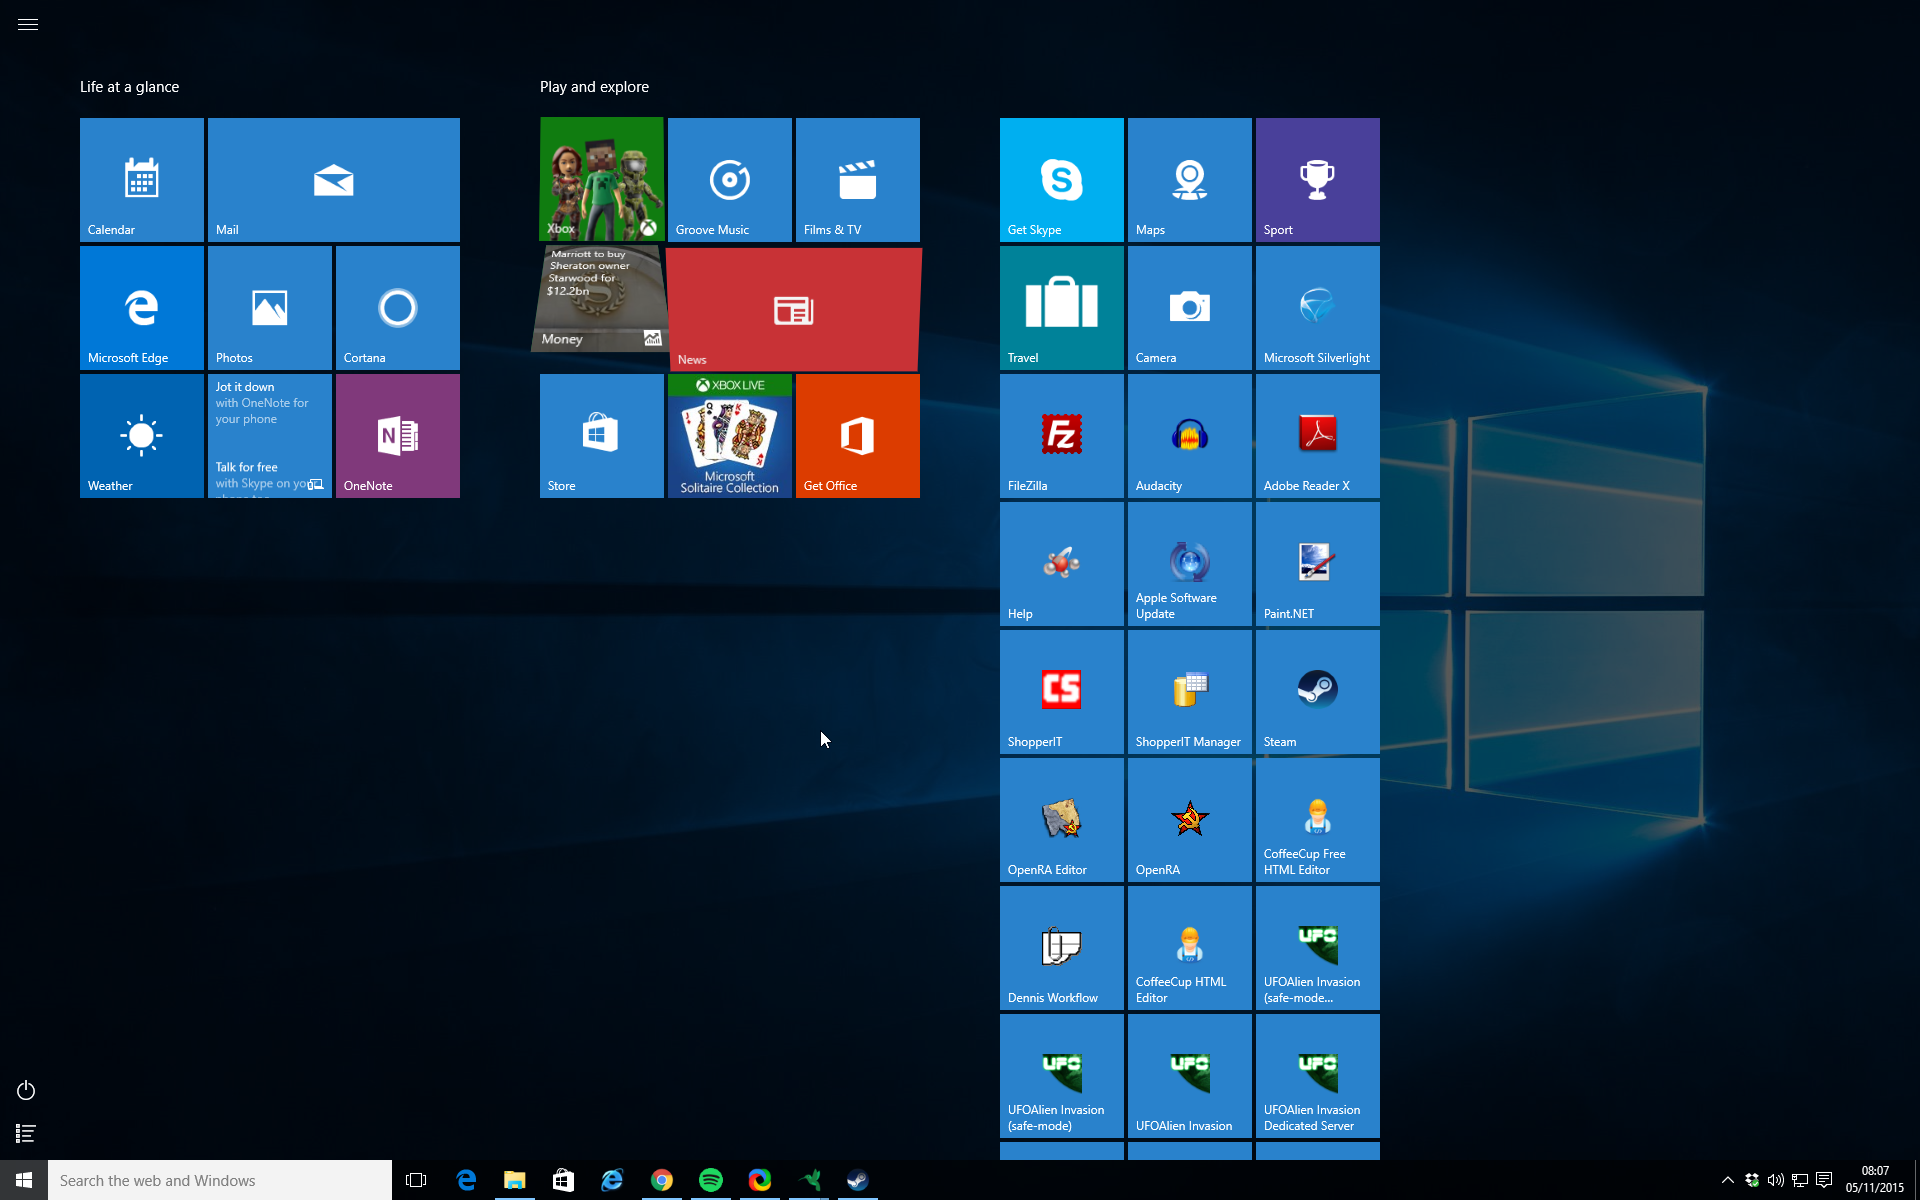 How to customise the windows 10 start menu expert reviews for Window opens off screen